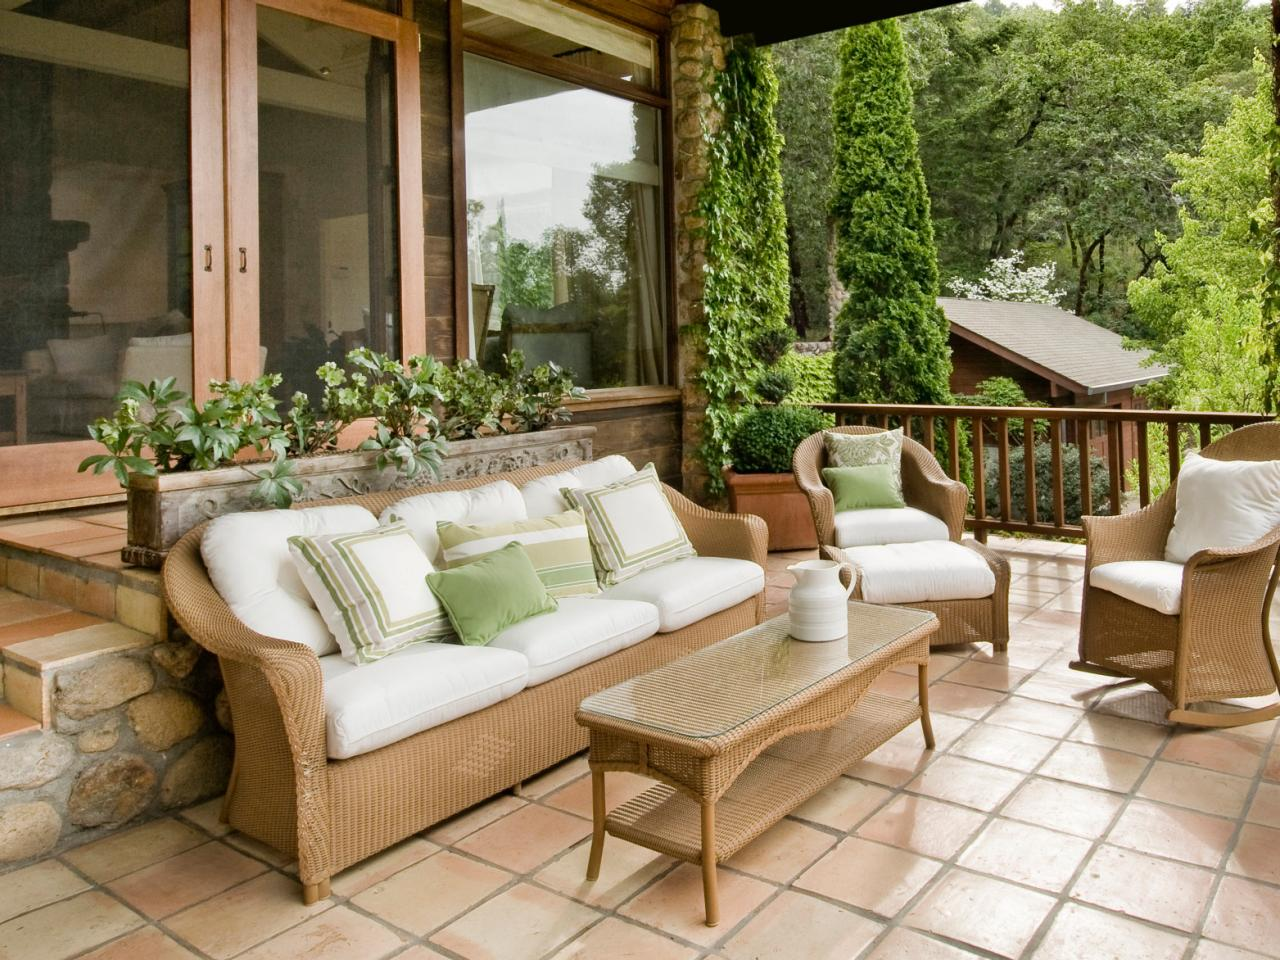 Image of: Outdoor Patio Tile Ideas Pavers